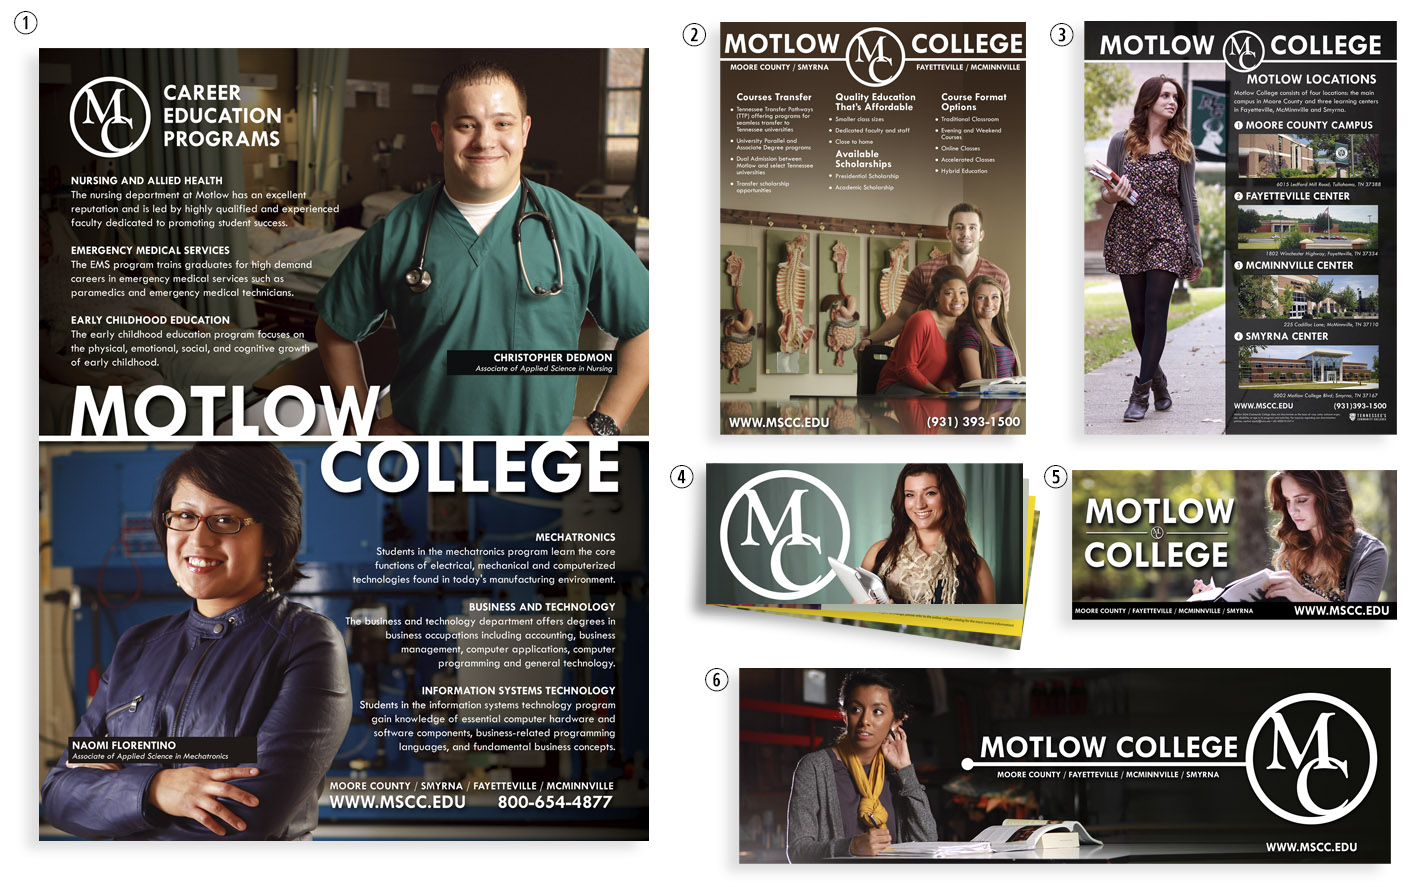 "(1) Career Education Program // Full Page Magazine Ad (2) High School Poster // 18"" x 24"" Poster (3) Locations Poster // 18"" x 24"" Poster (4) 2014 View Book // 24pg Saddle Stitched (5) Junior Bilboard // 6' x 12' (6) Motlow Bulletin Design // 14' x 48'"